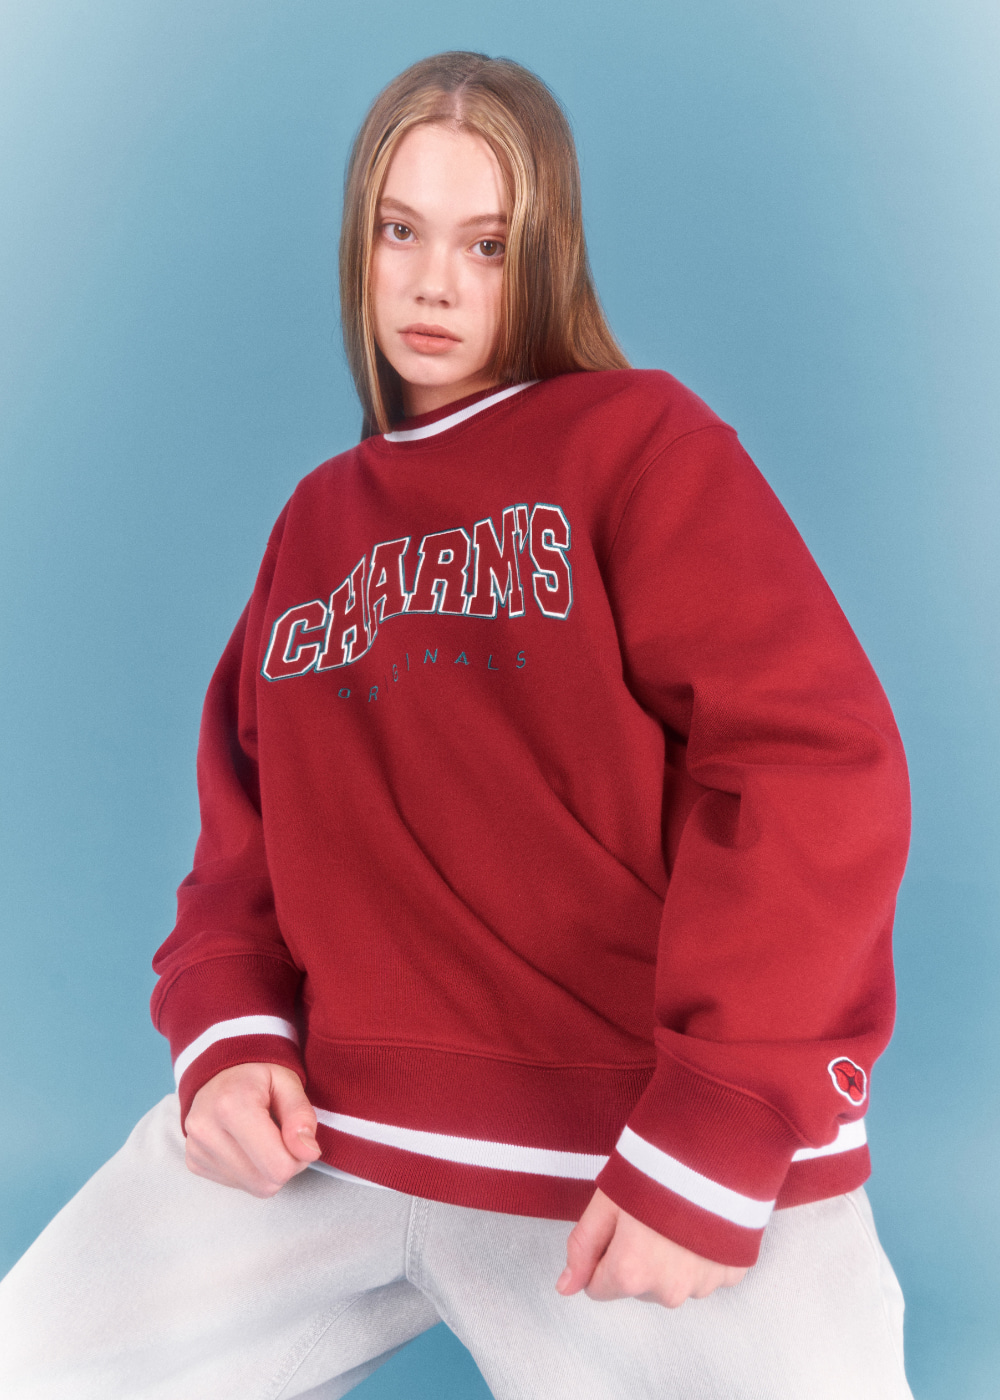 CHARMS APPLIQUE  LOGO SWEATSHIRTS RE